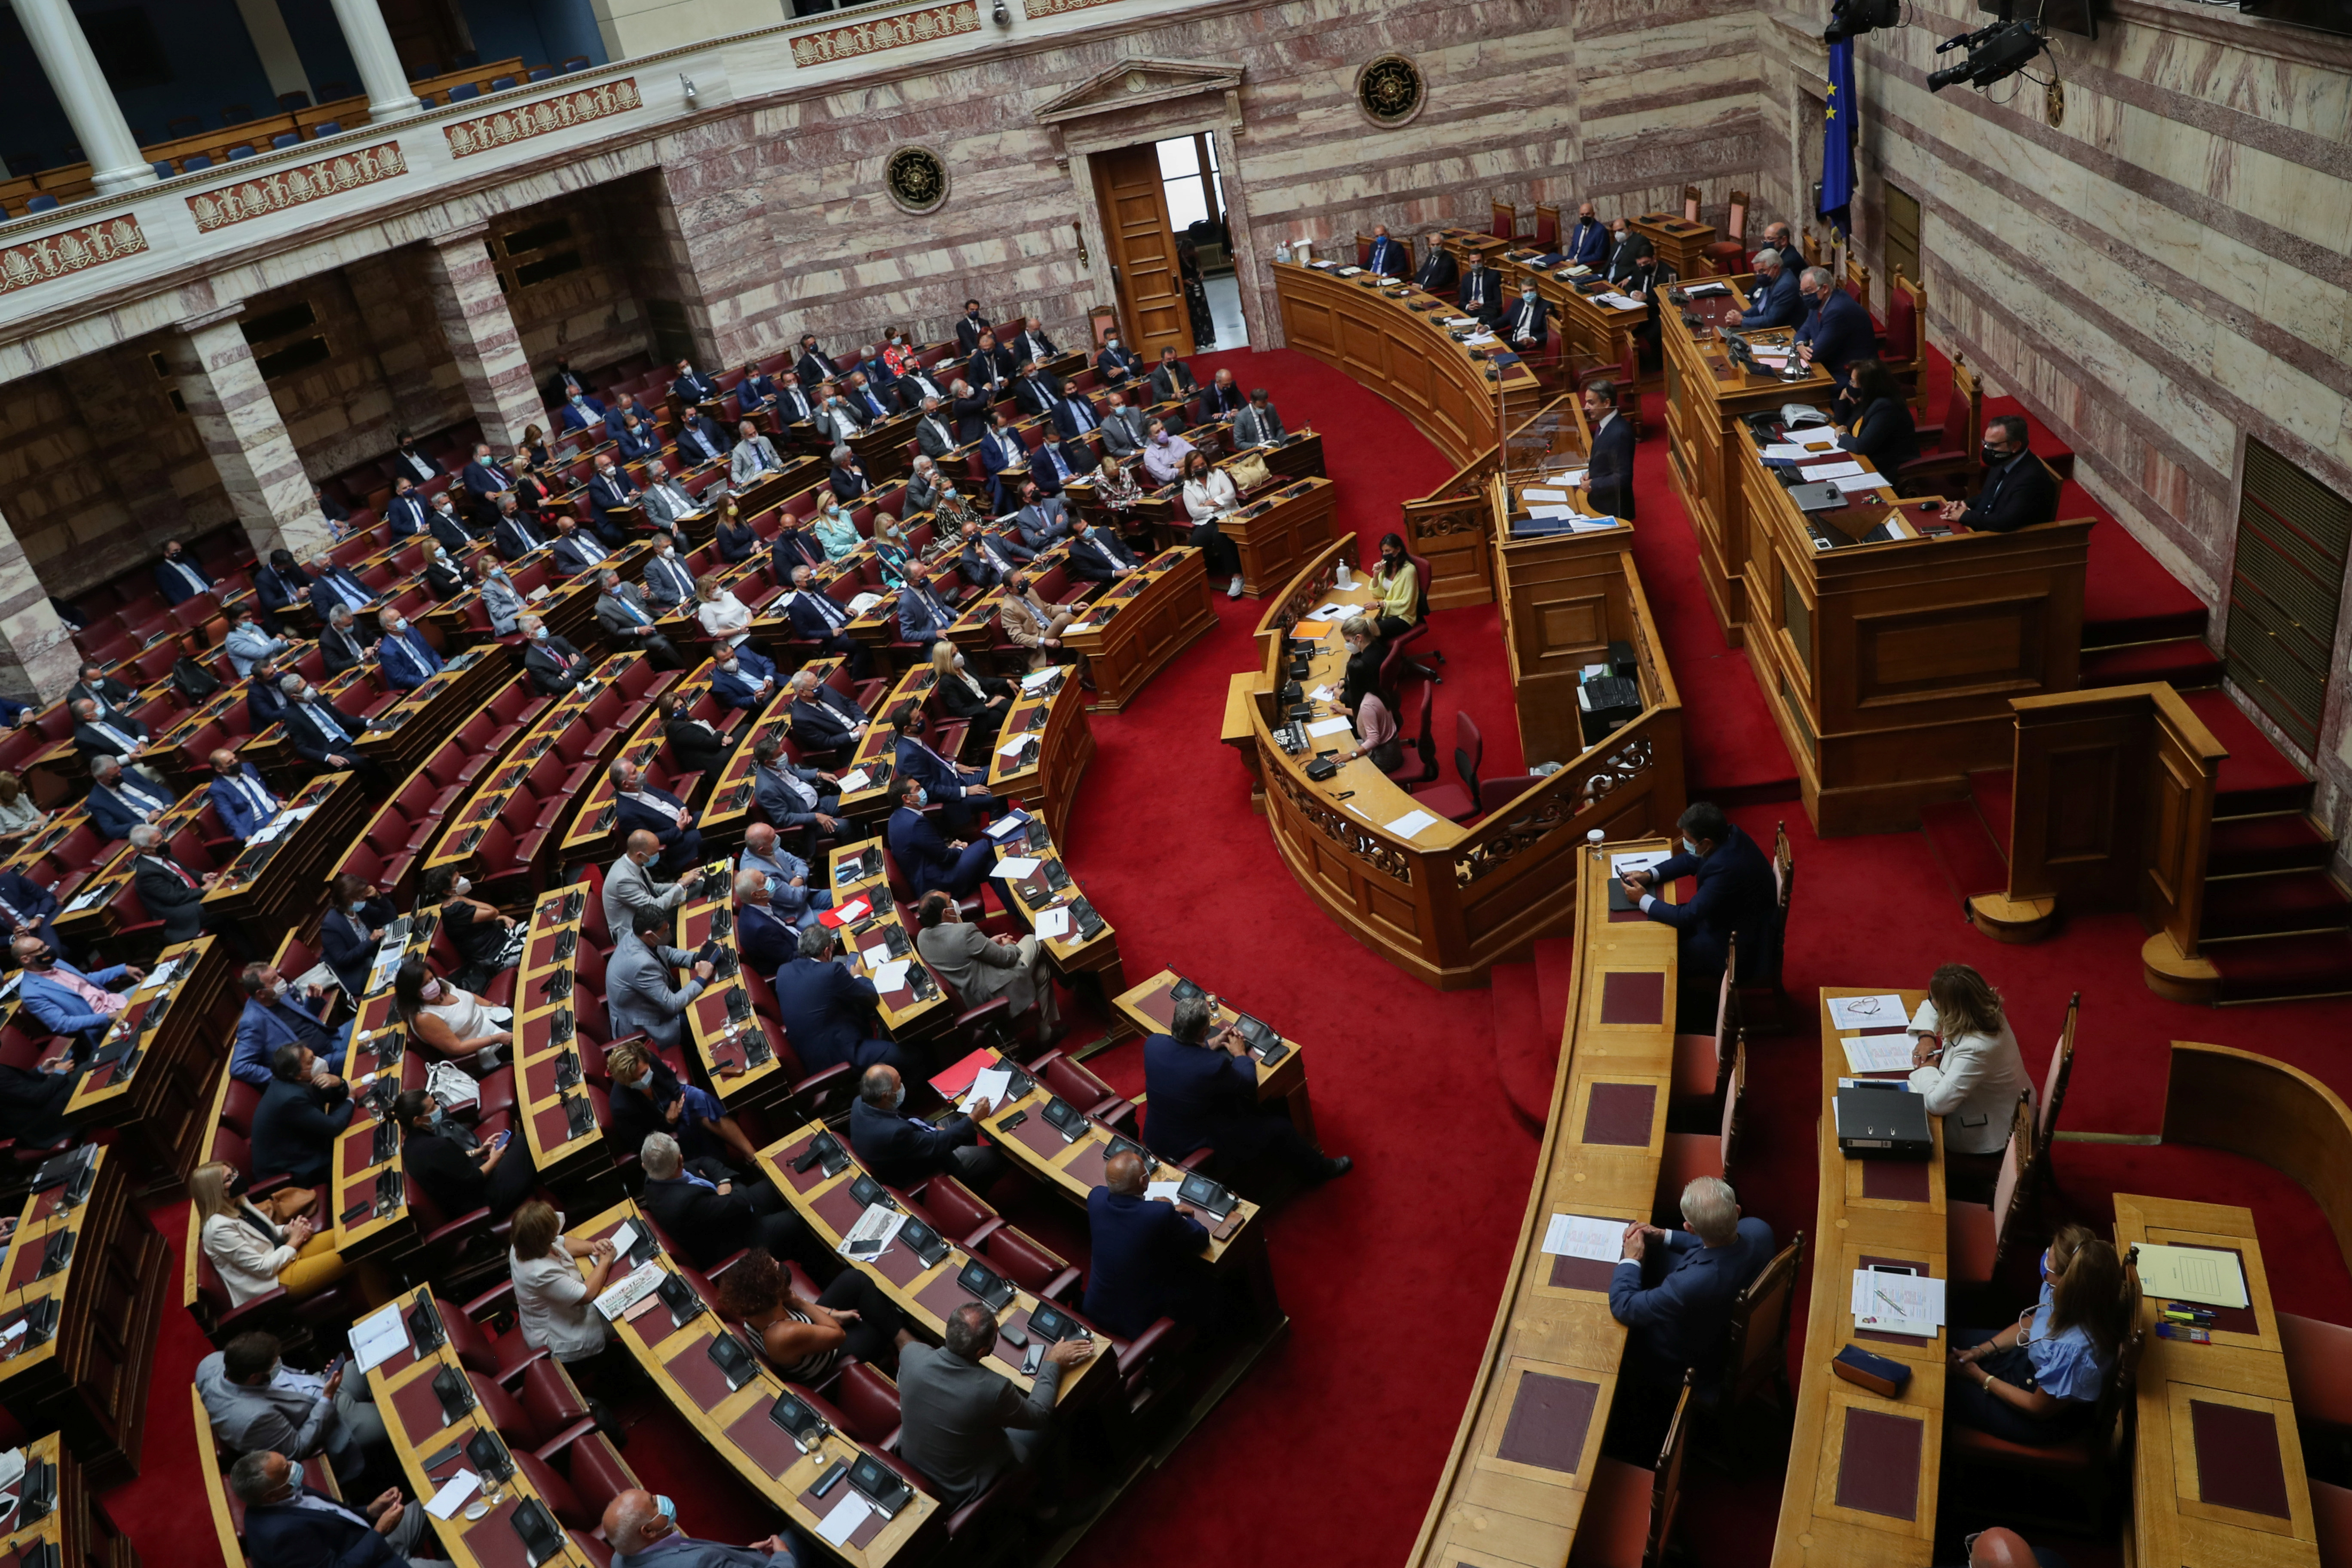 Greek Prime Minister Kyriakos Mitsotakis addresses lawmakers during a parliamentary session on recent wildfires, in Athens, Greece, August 25, 2021. REUTERS/Louiza Vradi